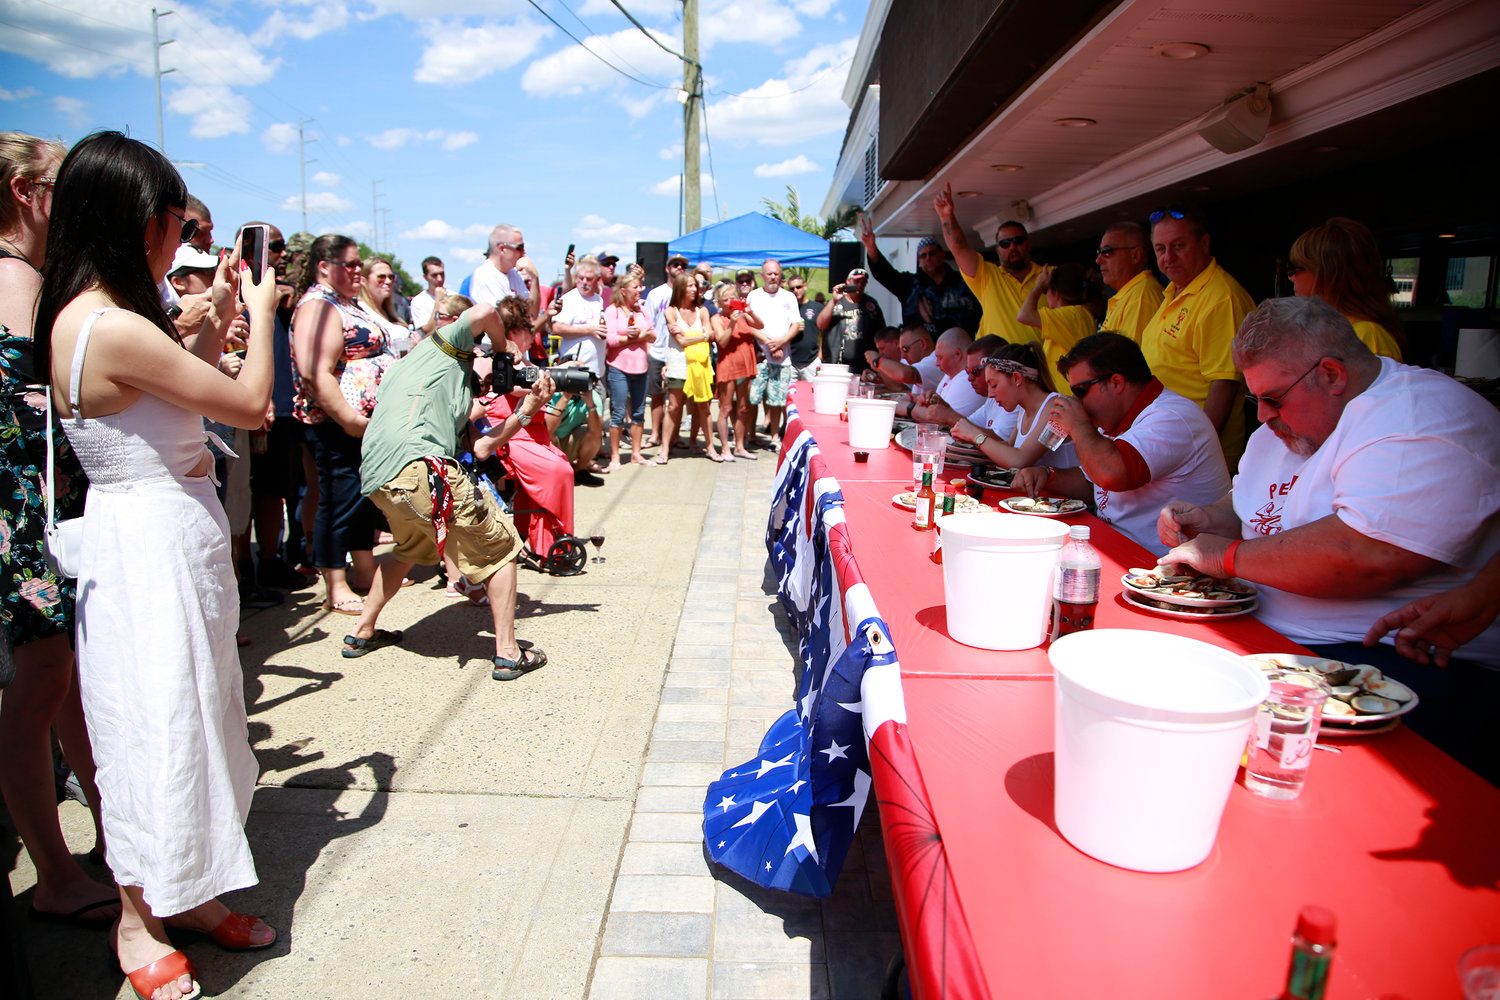 Peter's Clam Bar in Island Park hosted its sixth annual clam-eating contest on Sunday, which was attended by hundreds of participants and spectators.